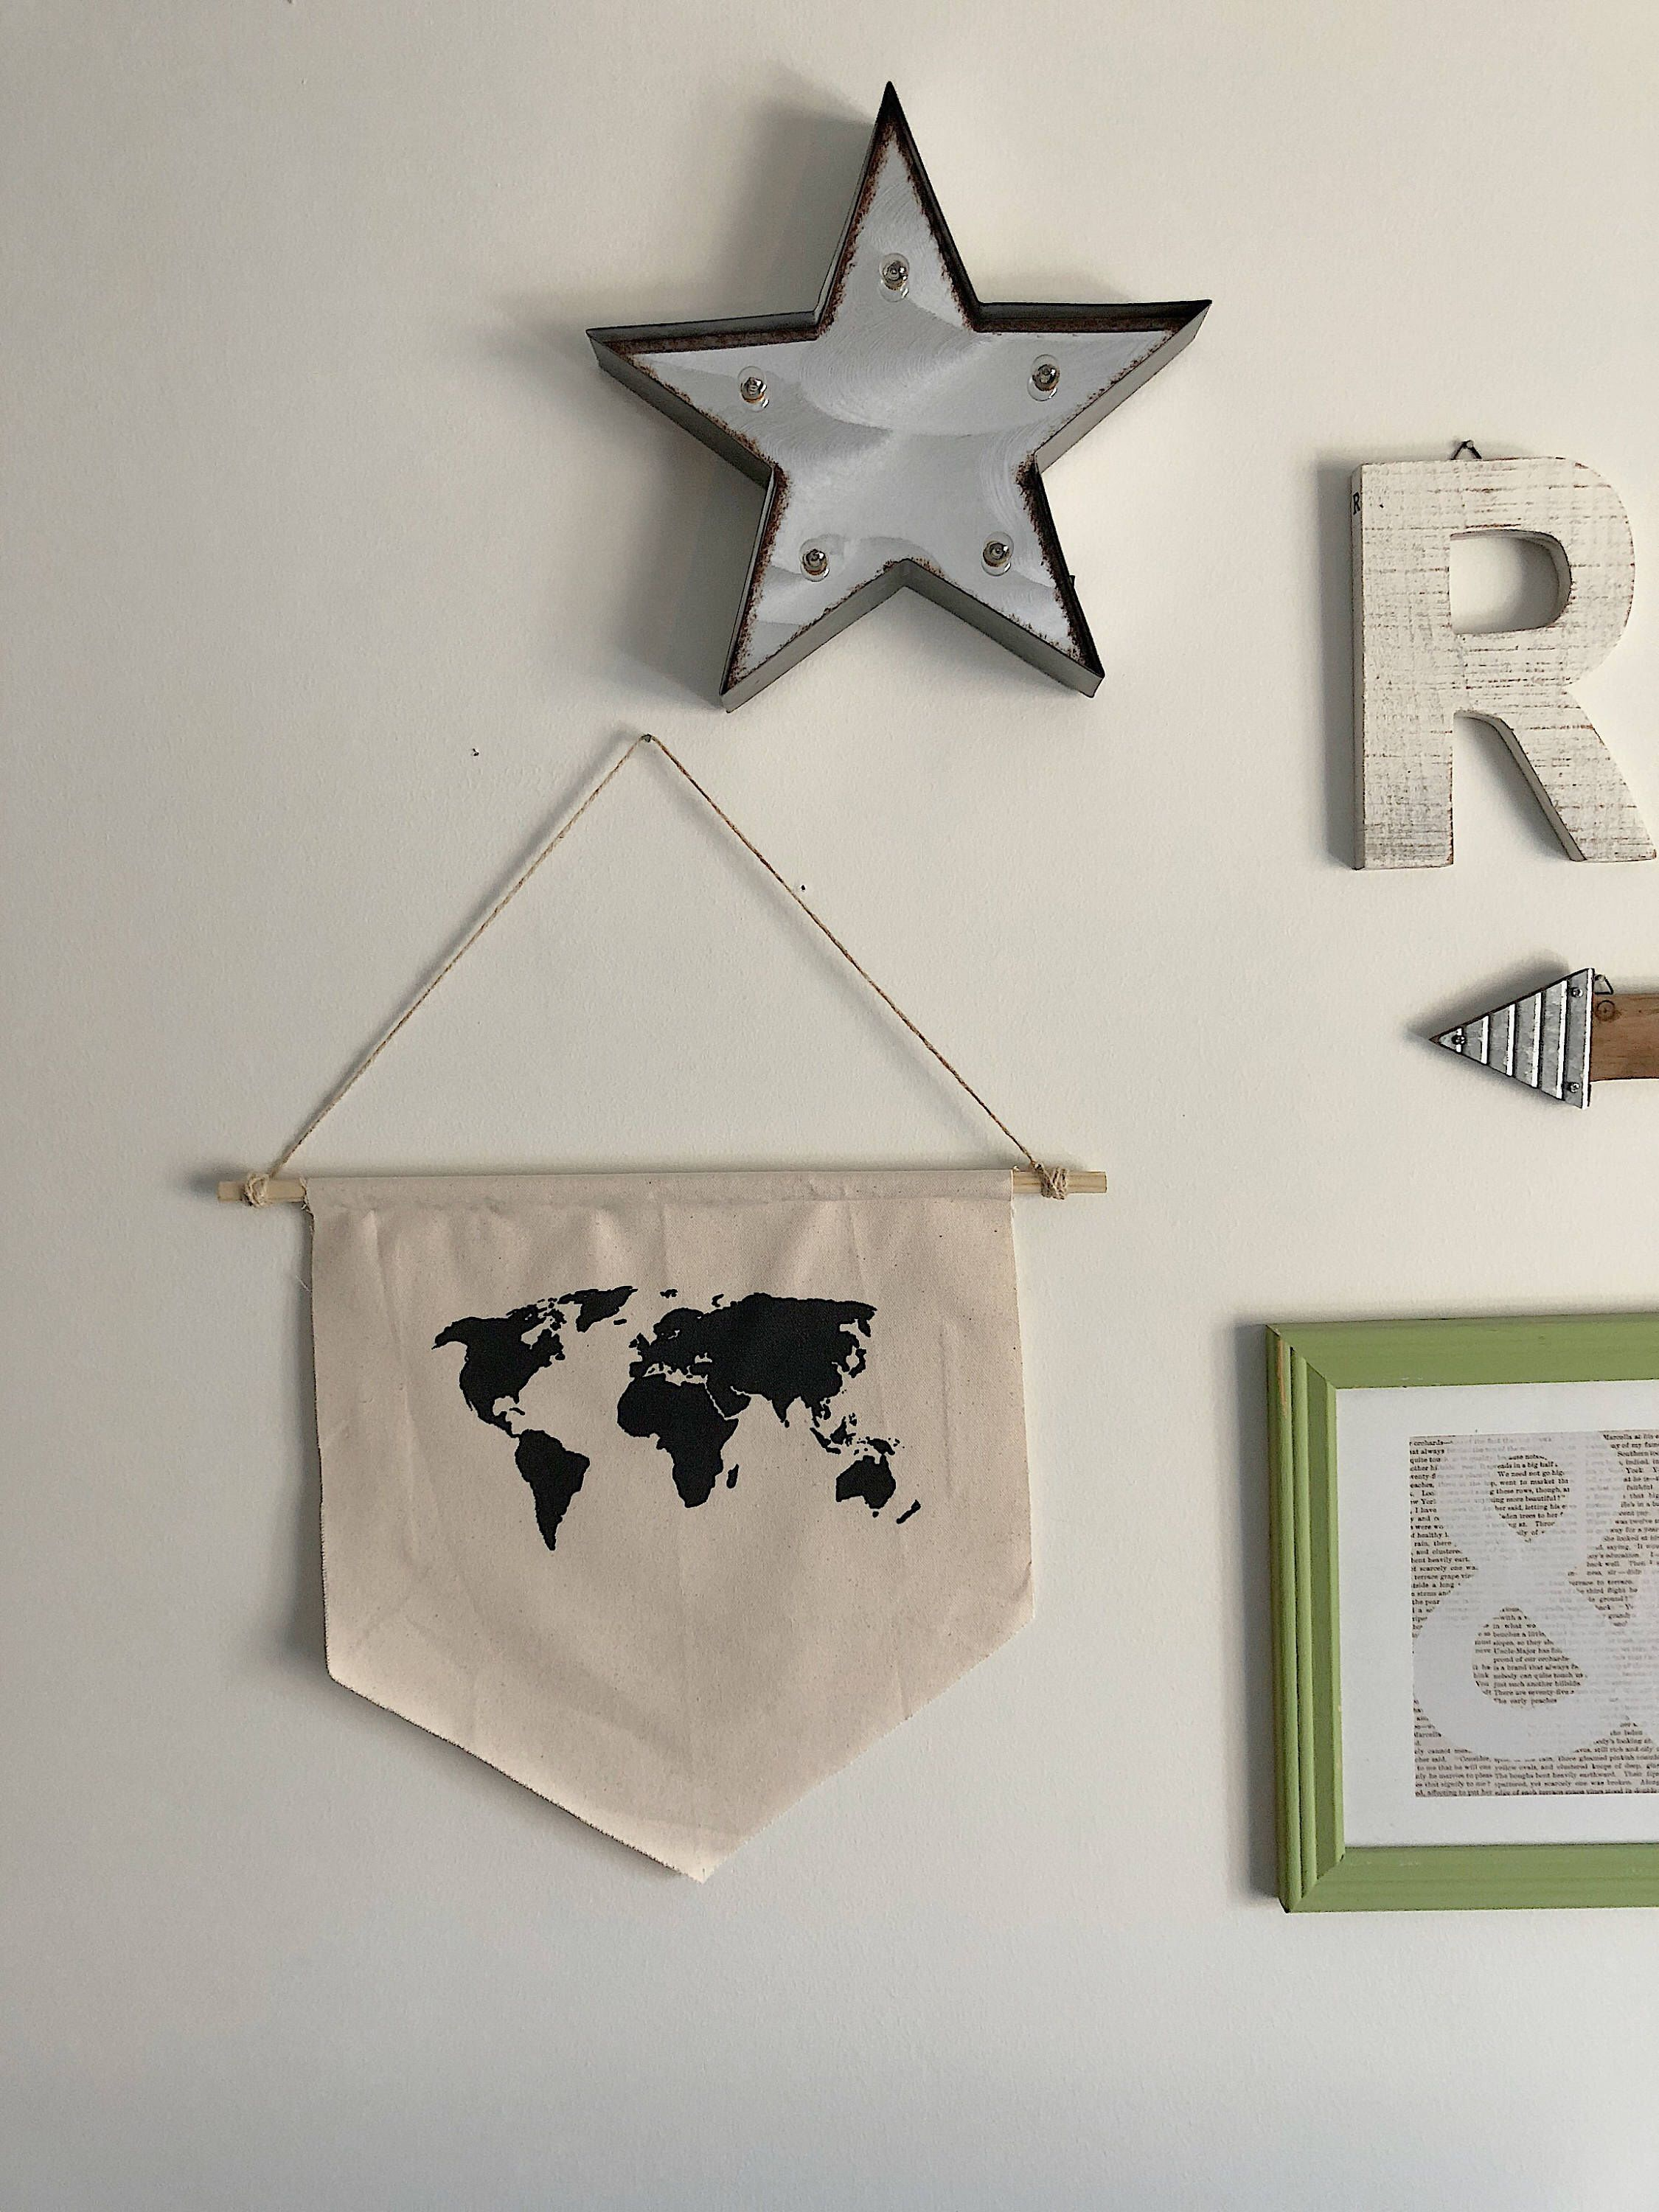 World map banner wall hanging canvas wall hanging world map world map banner wall hanging canvas wall hanging world map map wall hanging gumiabroncs Image collections